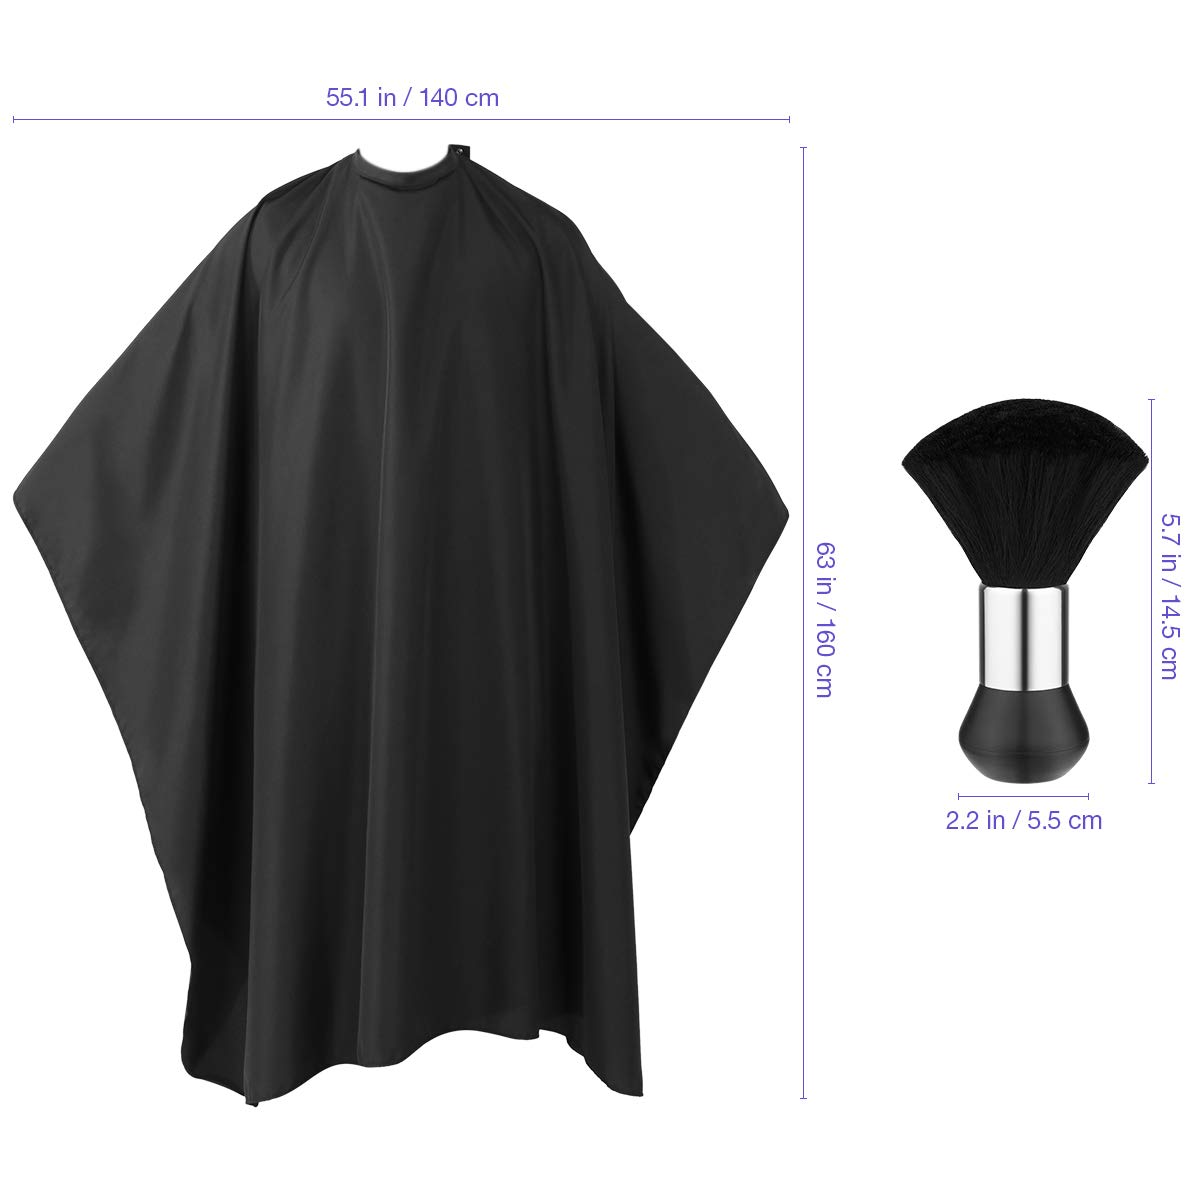 Professional Barber Cape with Snap Closure, Hair Cutting Salon Cape Hairdressing Apron Black, Neck Duster Brush Included